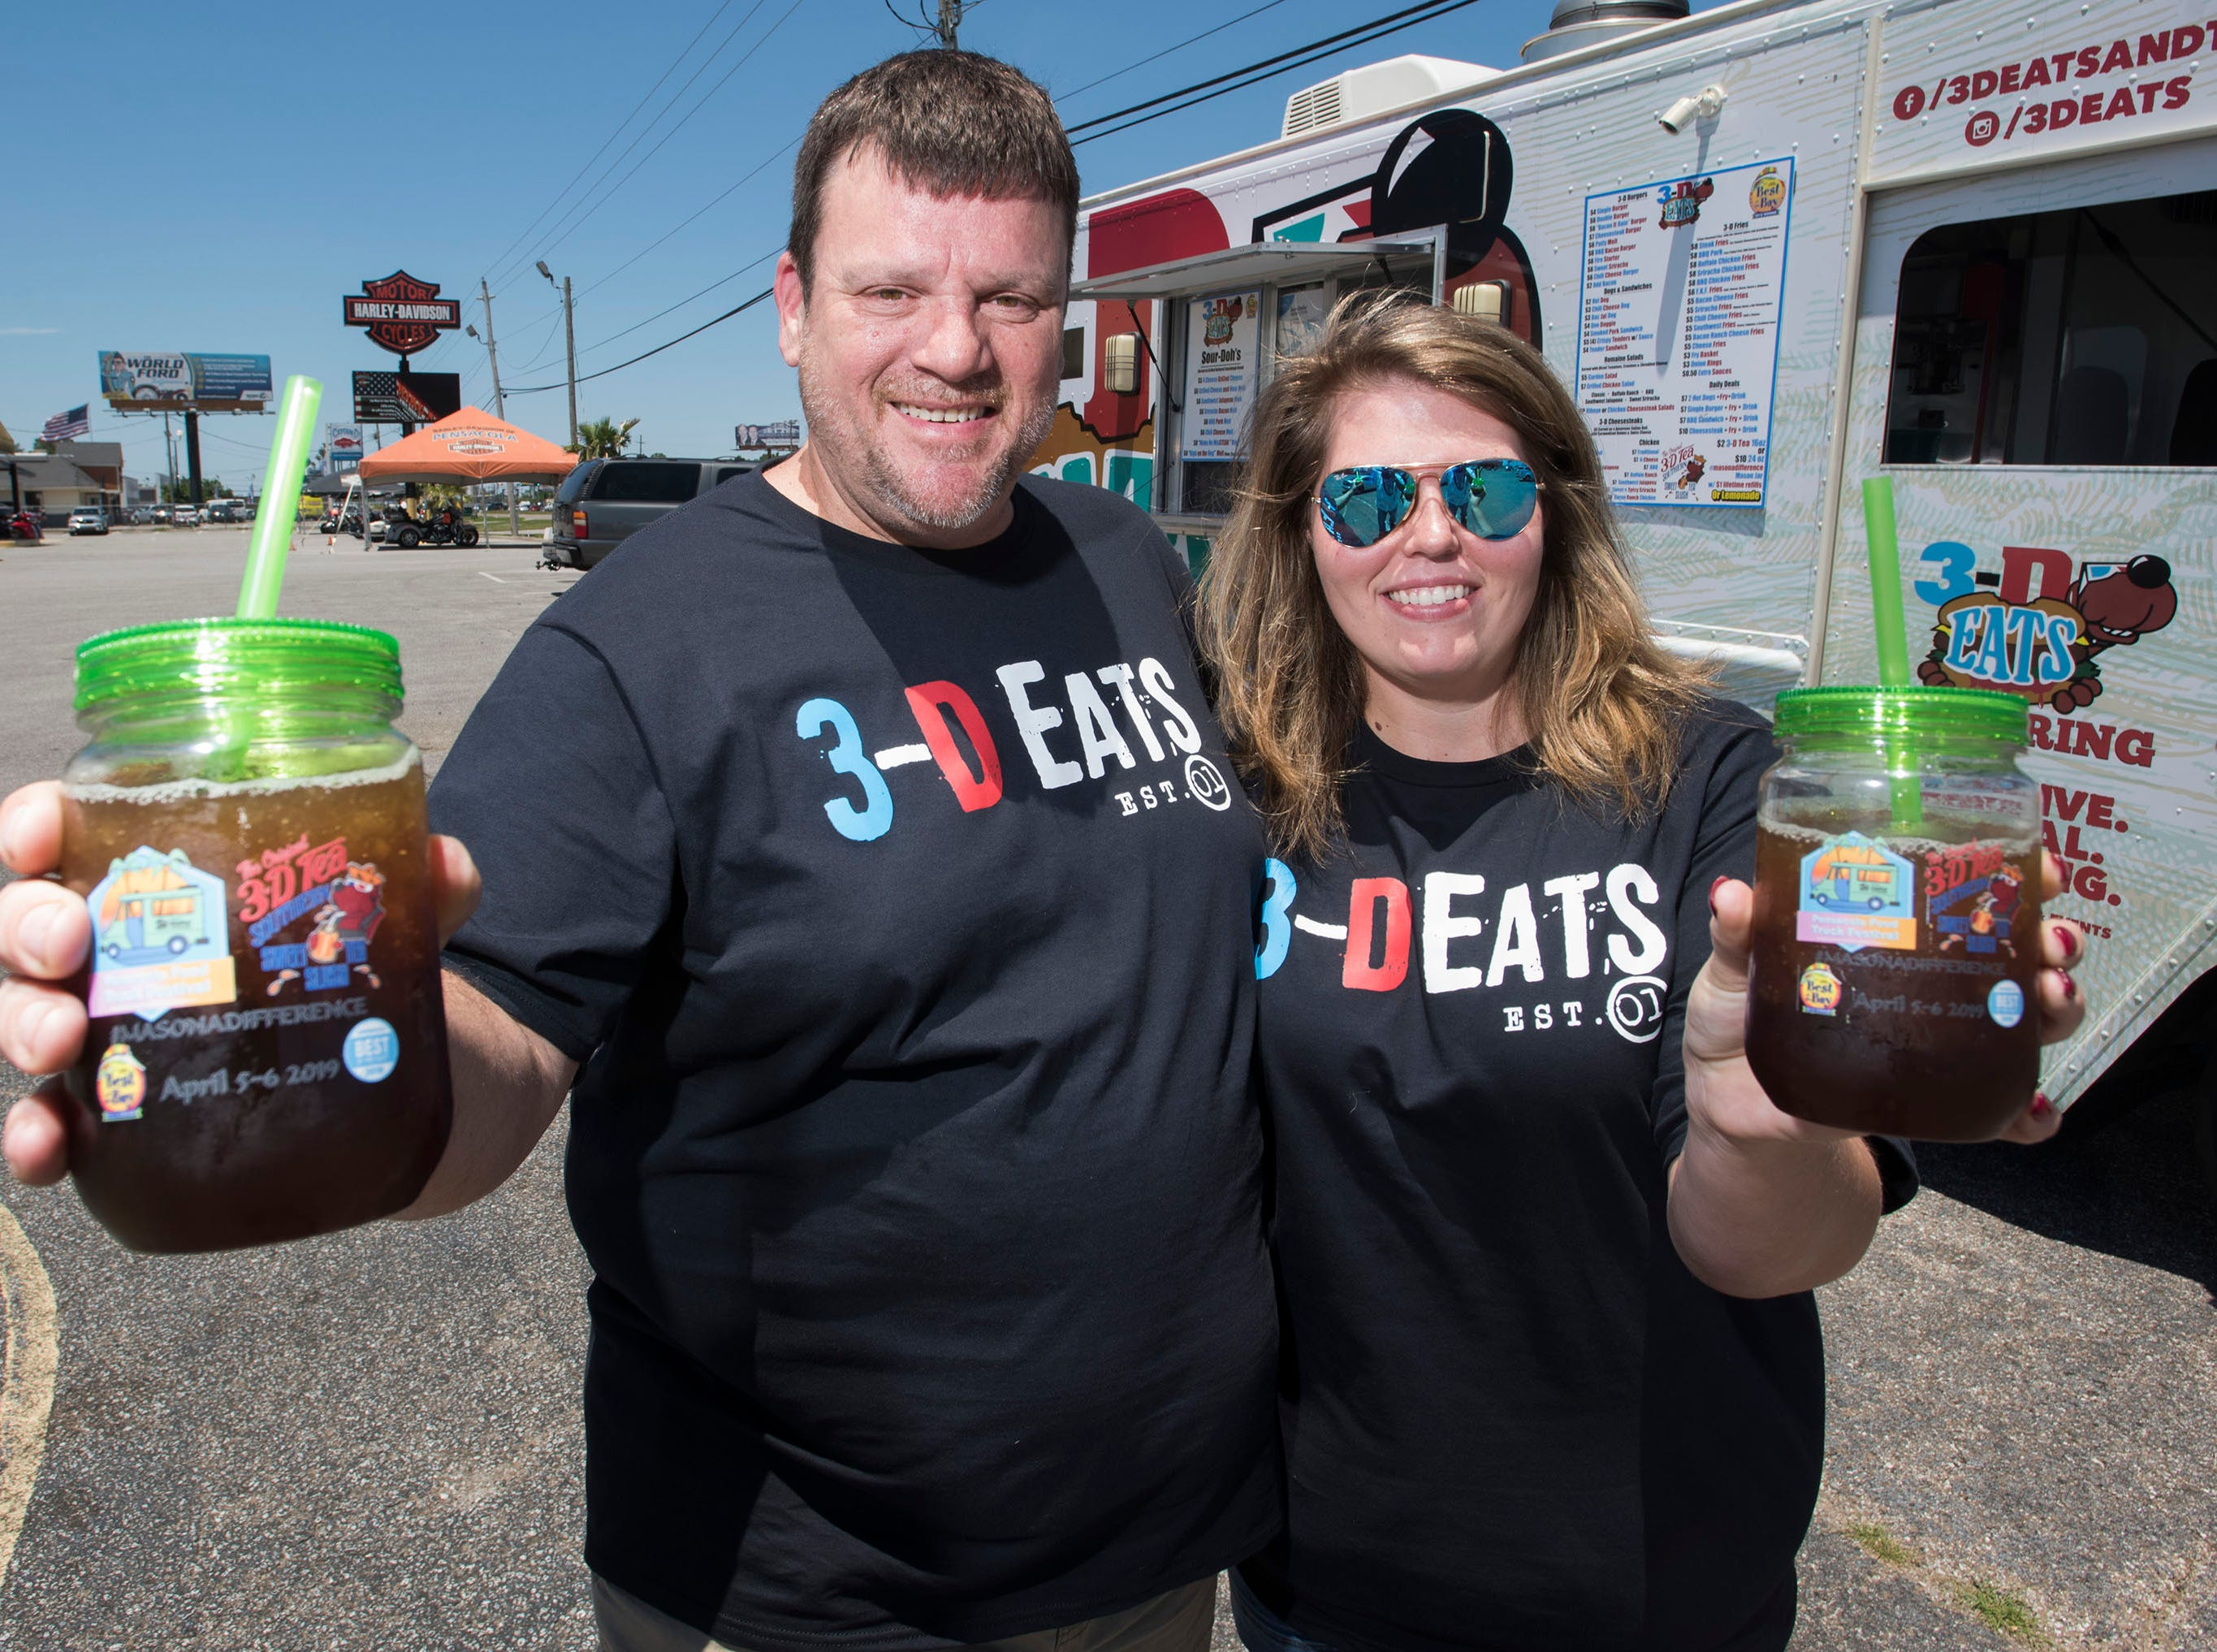 3D Eats food truck owners, Sean DeSmet and his wife, Brooke, show off the Mason a Difference drink jars available at their food truck on Tuesday, May 14, 2019. The couple sells the Mason jars to raise money for local charities.